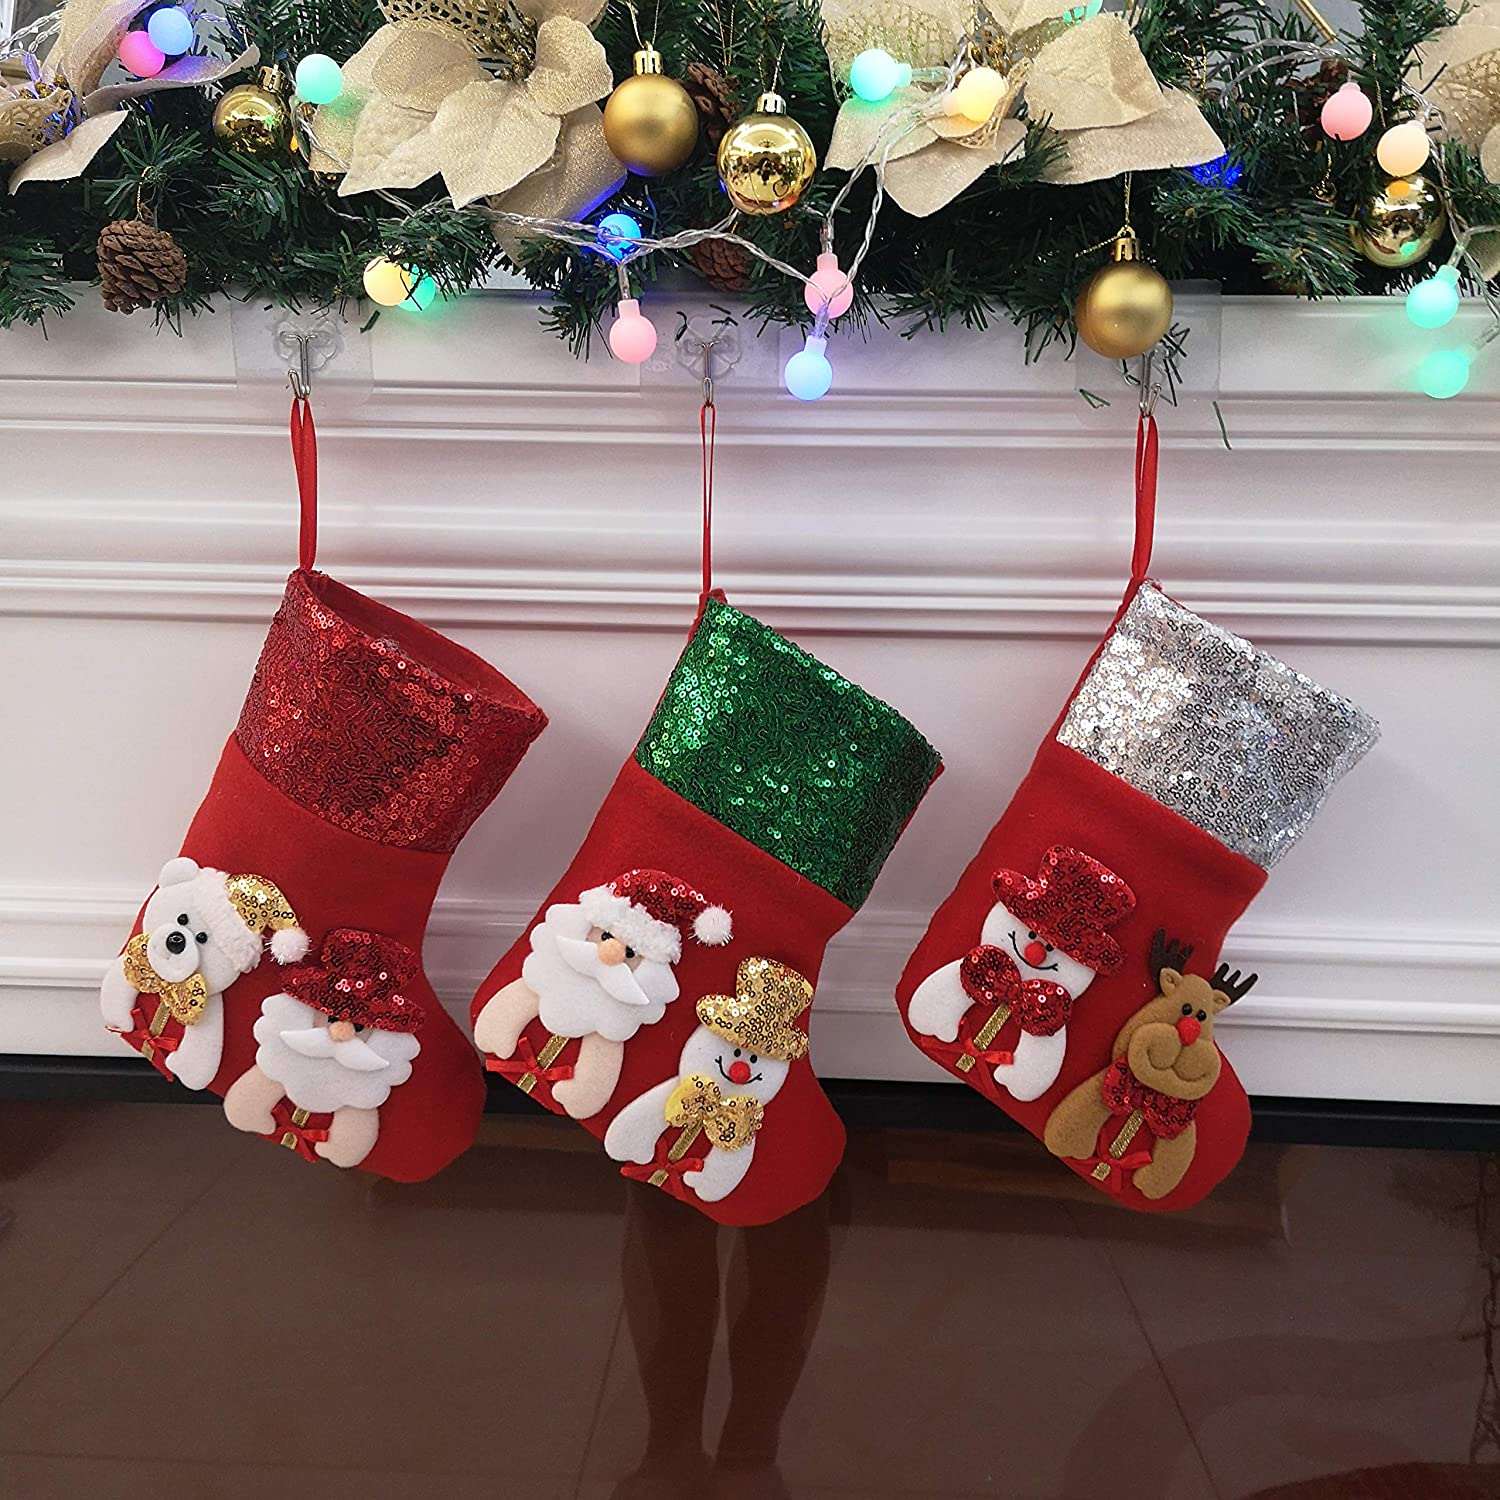 Houwsbaby 6 pcs Small Sequin Scale Christmas Stockings 3D Image Holders Kit Felt Socks Sparkle Paillette Ornament Party Decor Gift Bags for Kids Red 01 11.5 inches